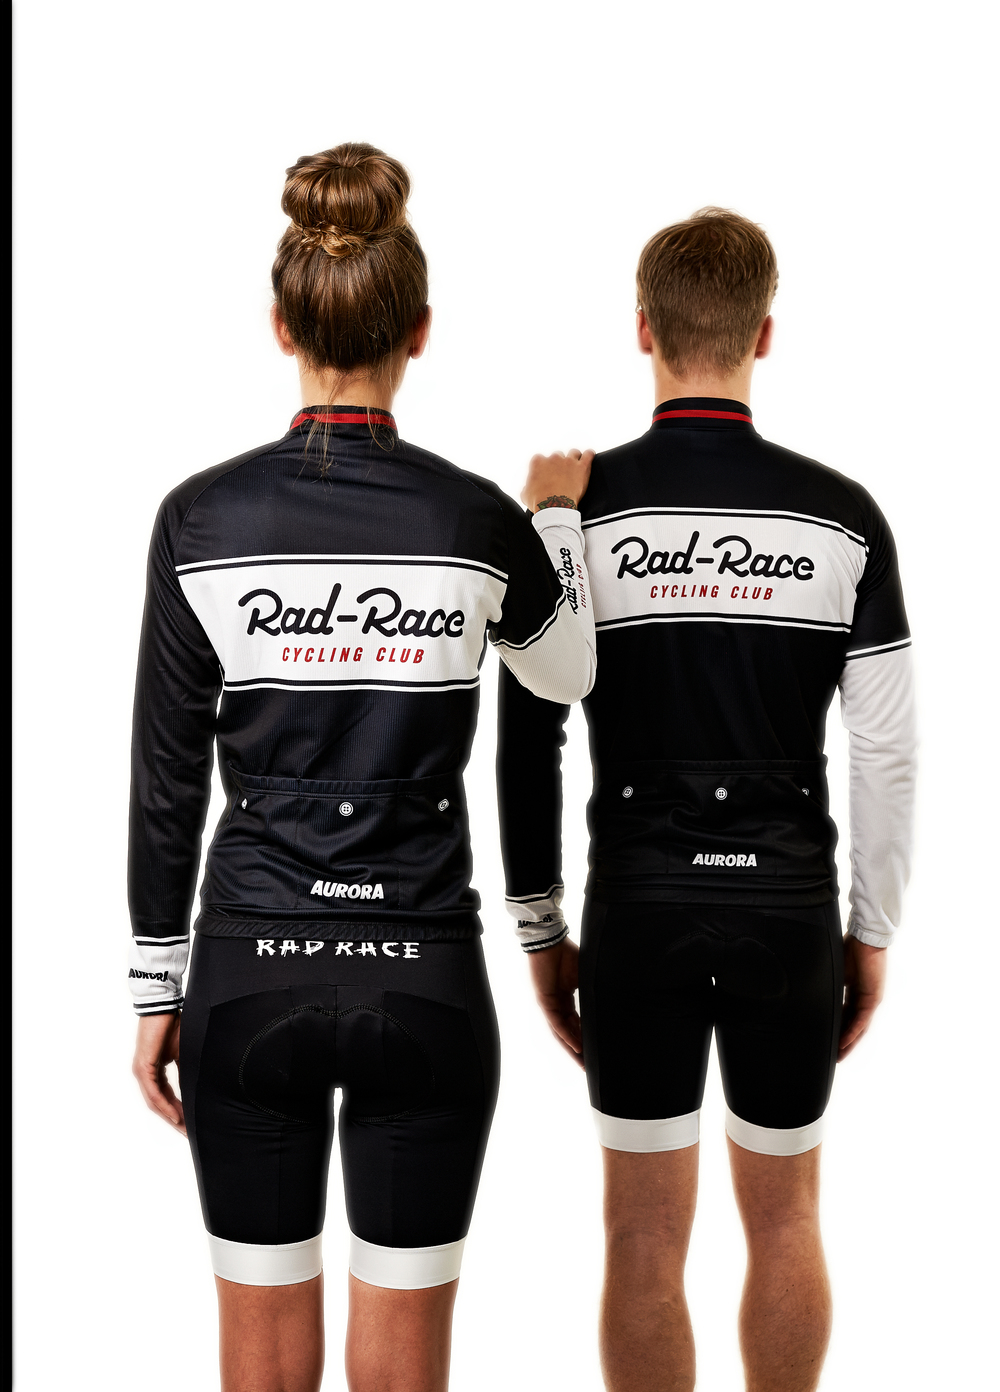 RadRaceShop_CyclingClub_24.jpg